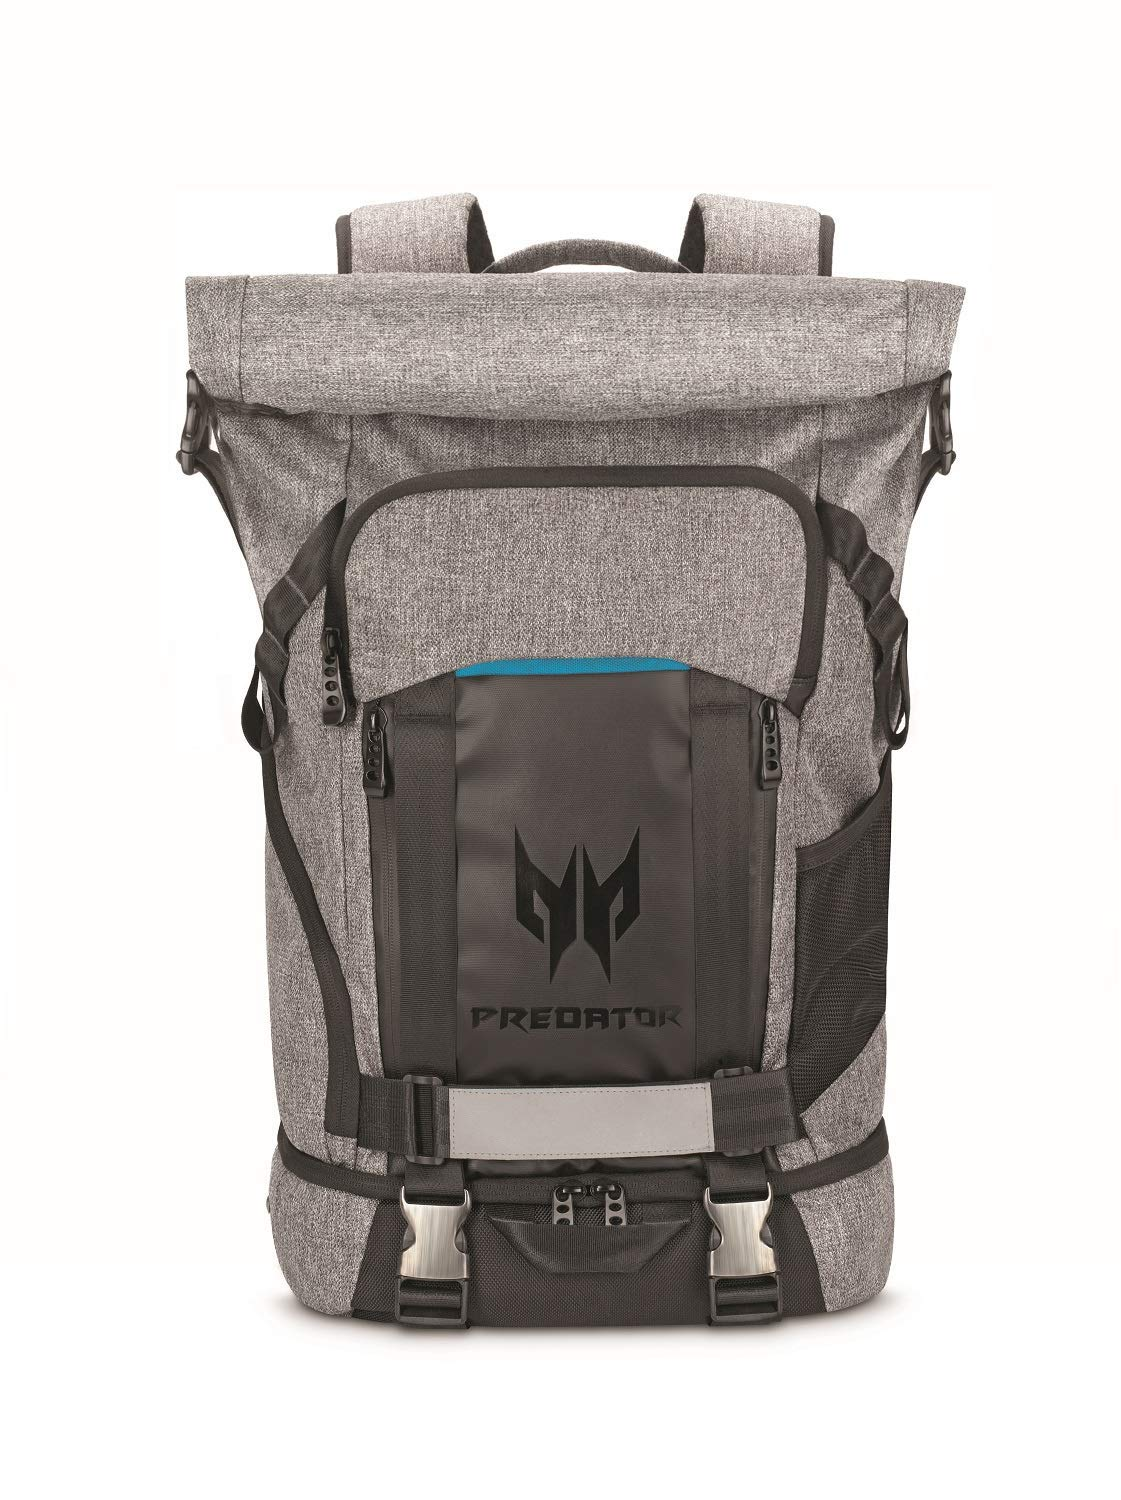 acer gaming laptop backpack